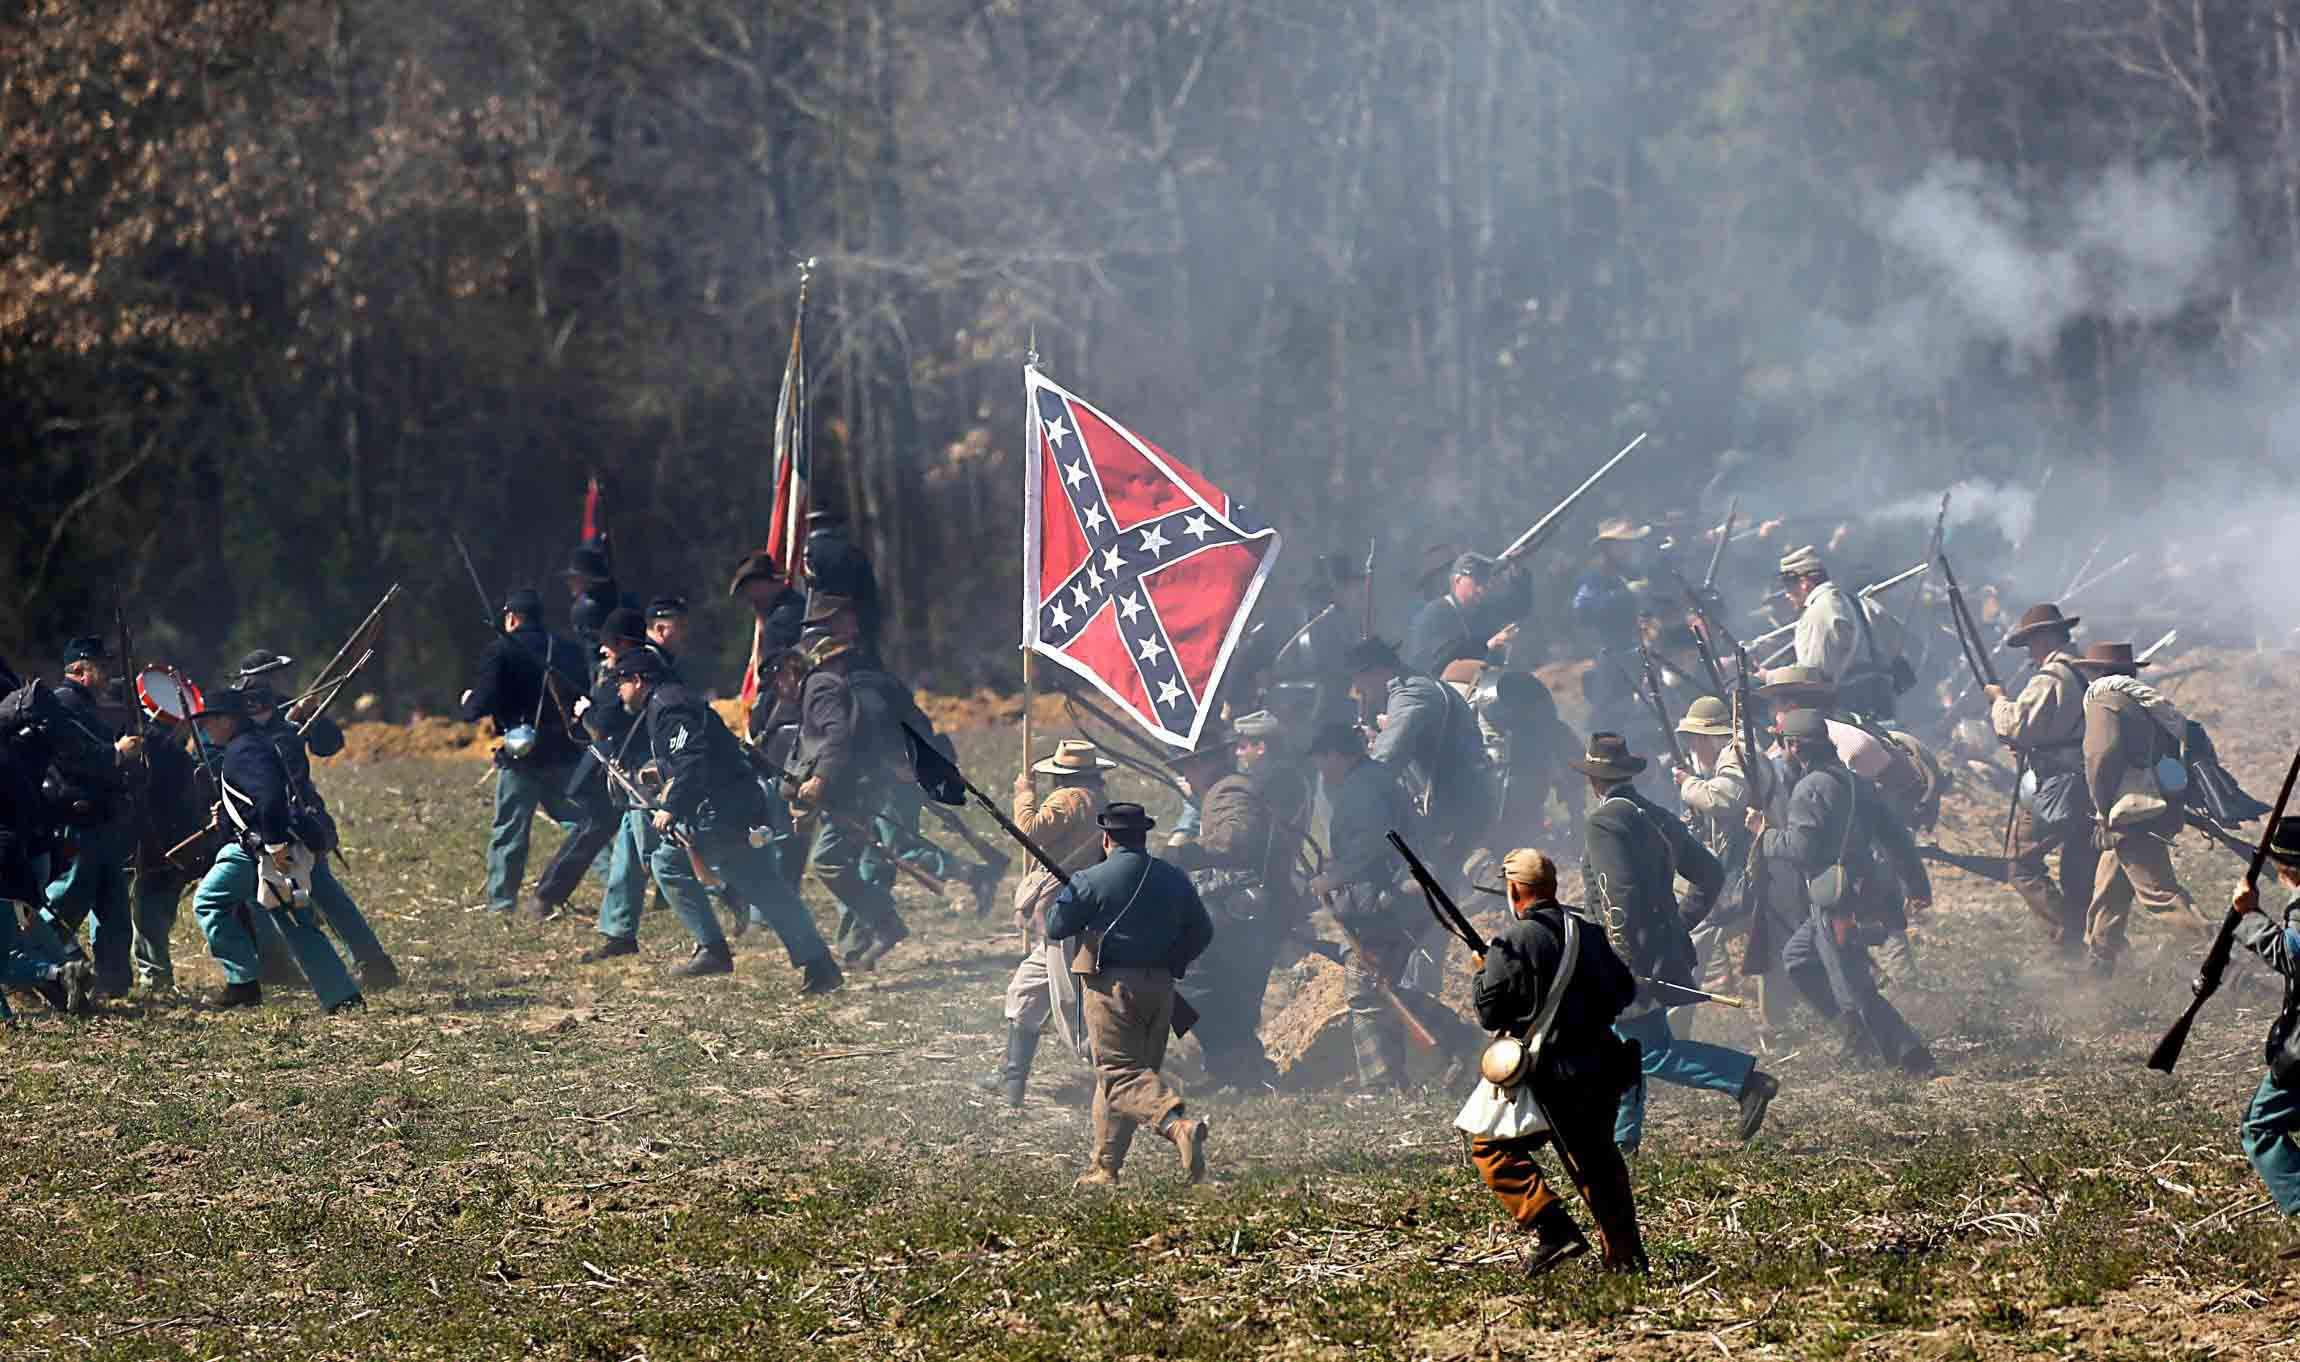 Civil War re-enactors battle during the 150th anniversary of the Battle of Bentonville on March, 21, 2015 in Four Oaks, N.C. News & Observer photo.